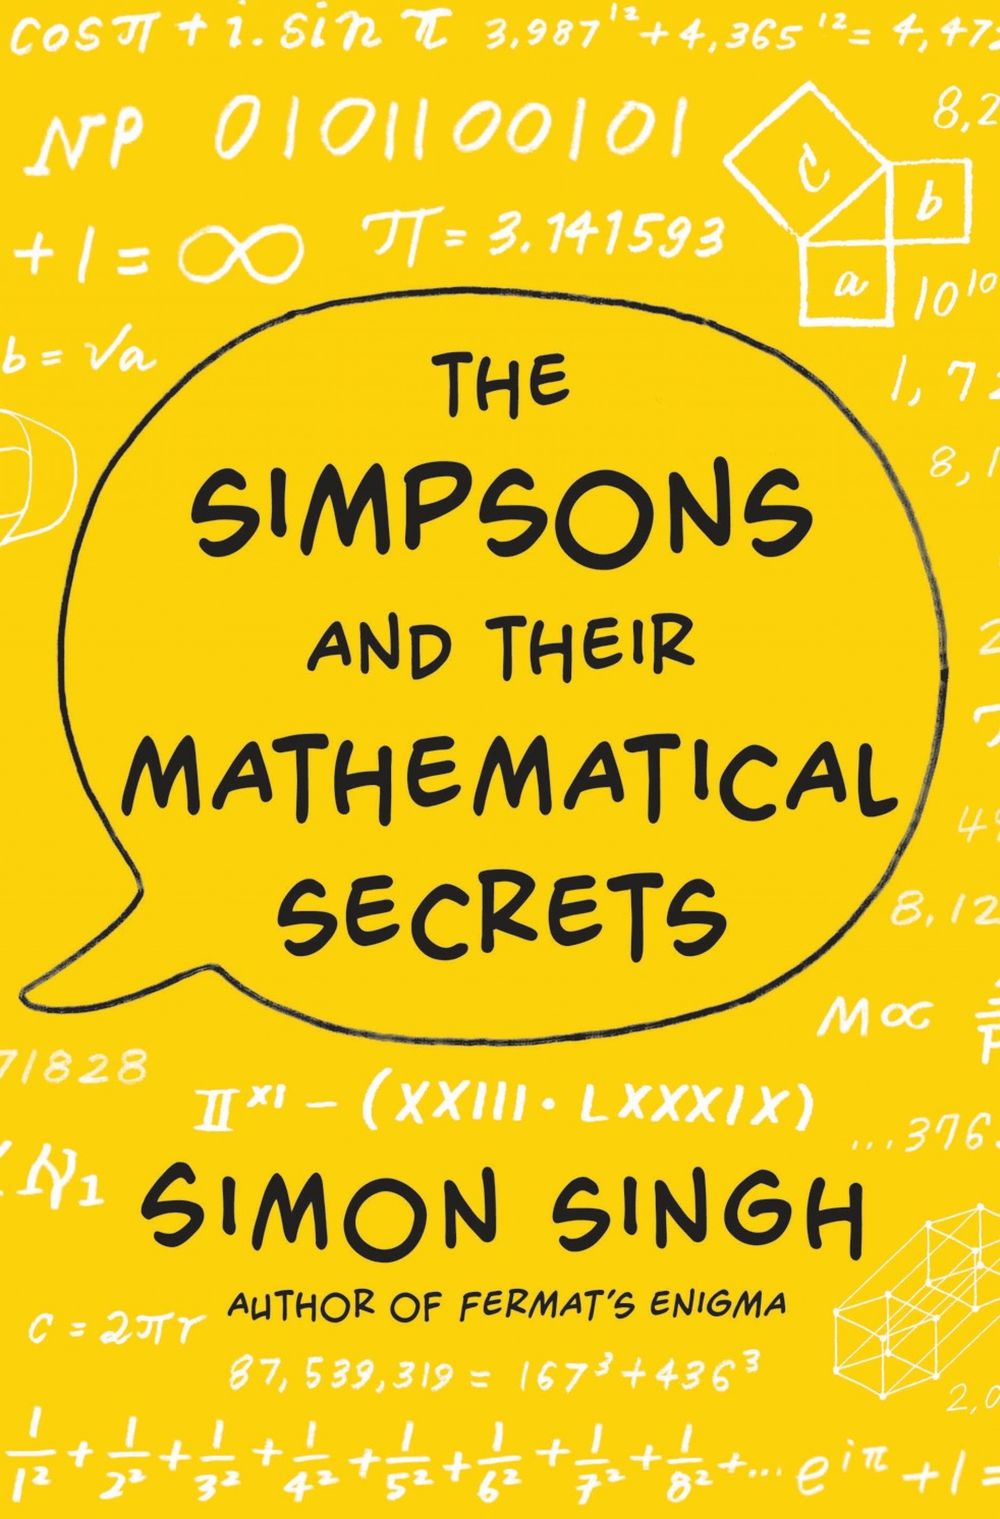 The Simpsons and Their Mathematical Secrets.png